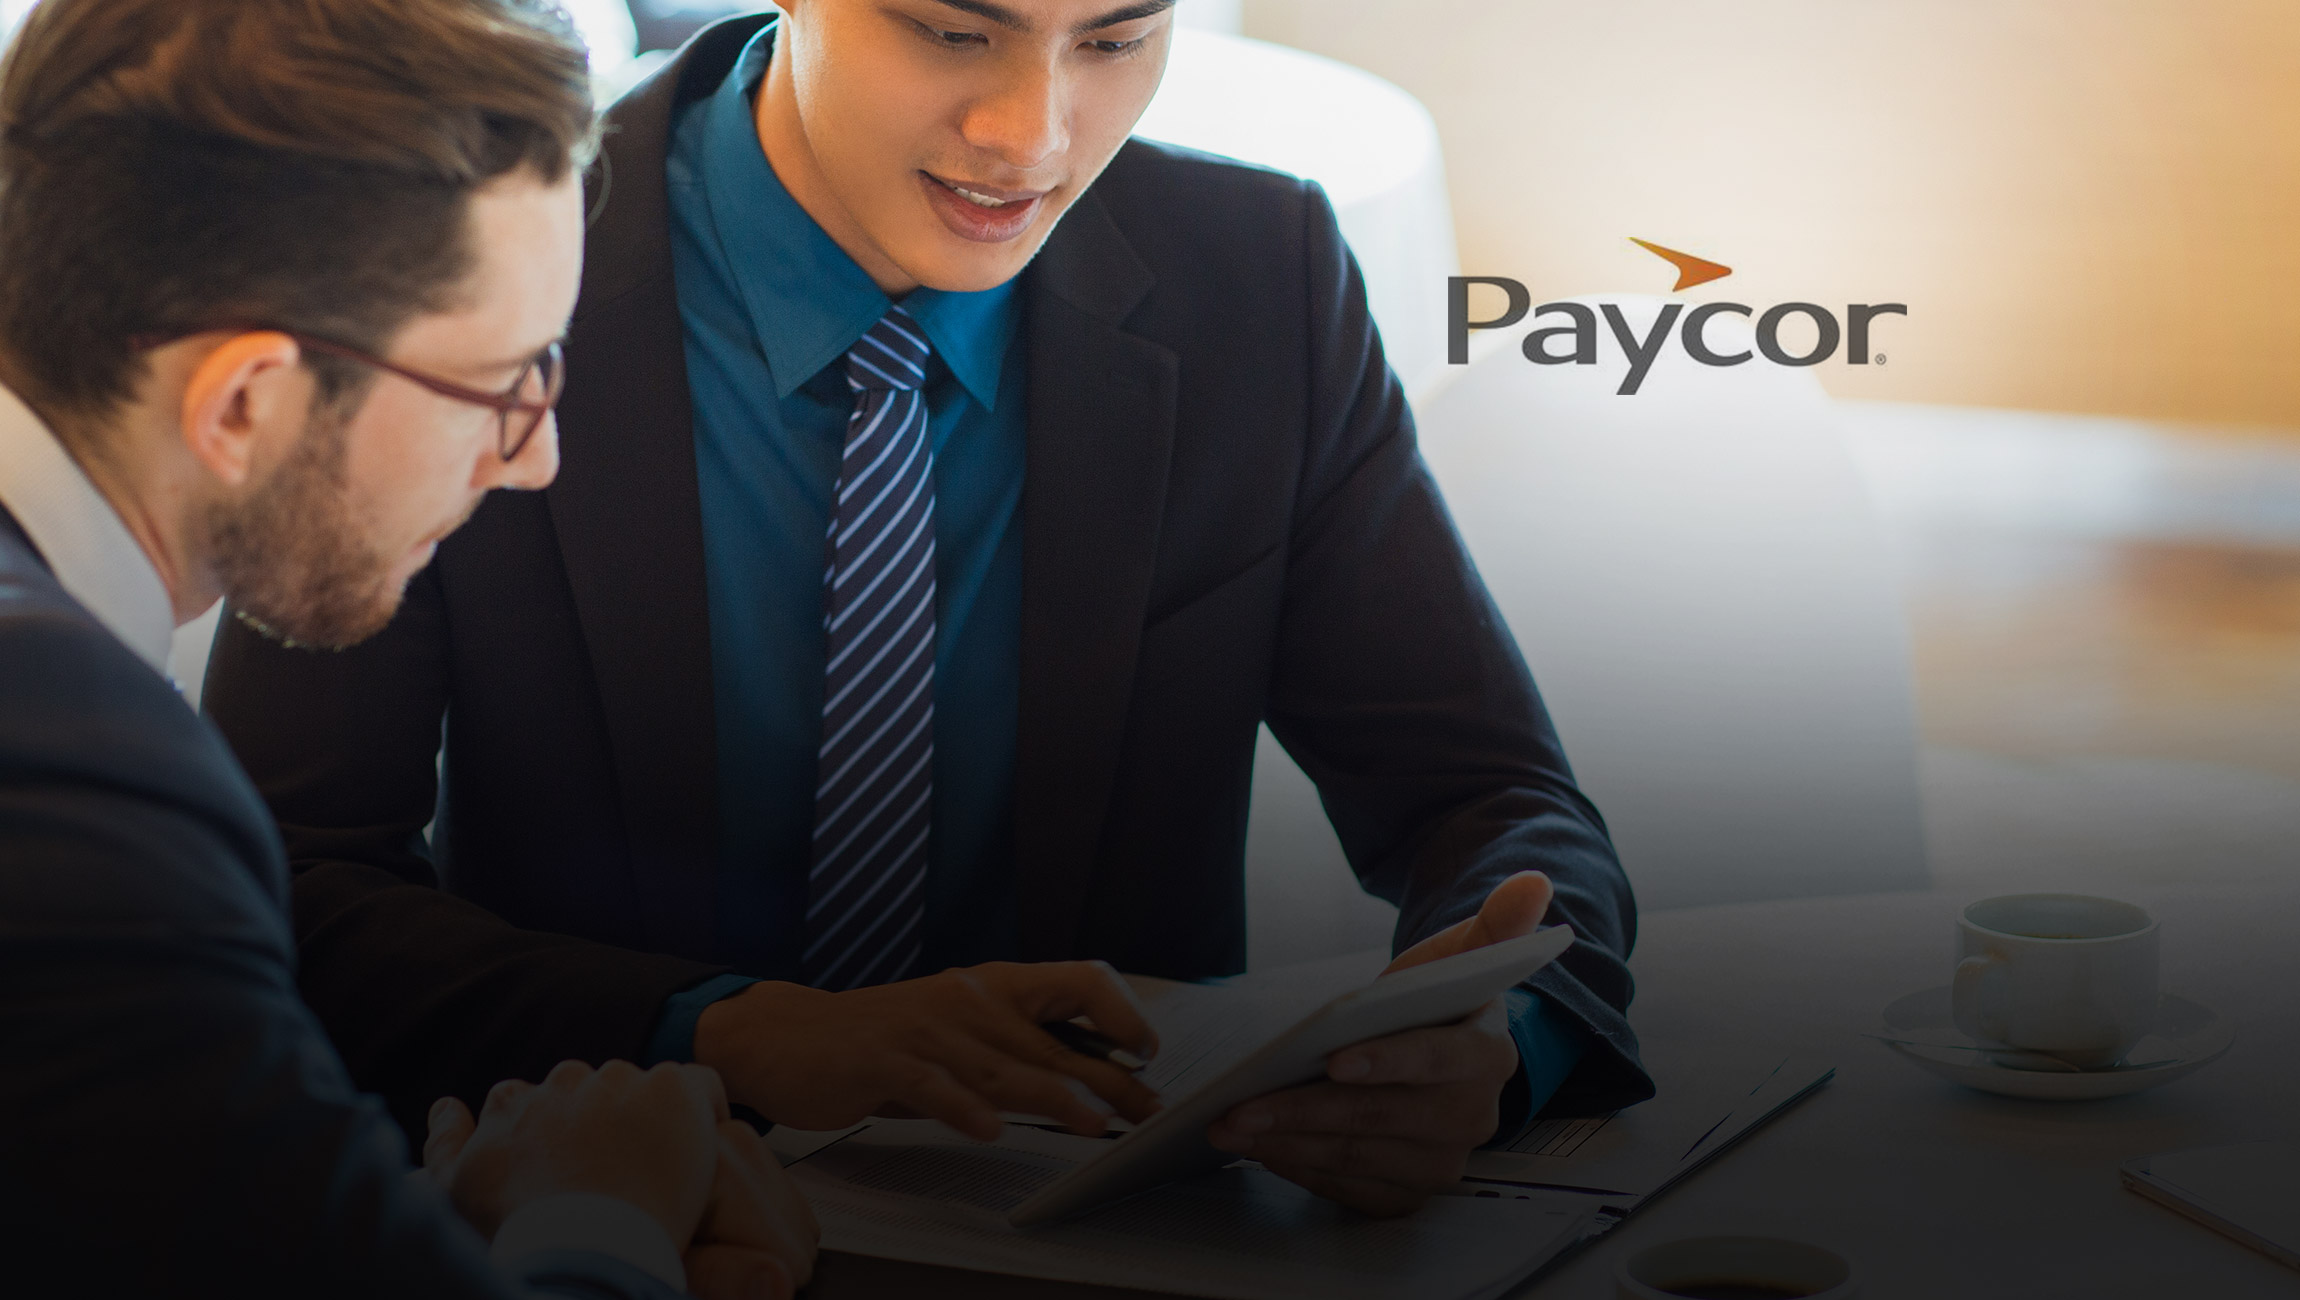 Paycor Recognized as a Leader in the Nucleus Research HCM Technology Value Matrix 2020